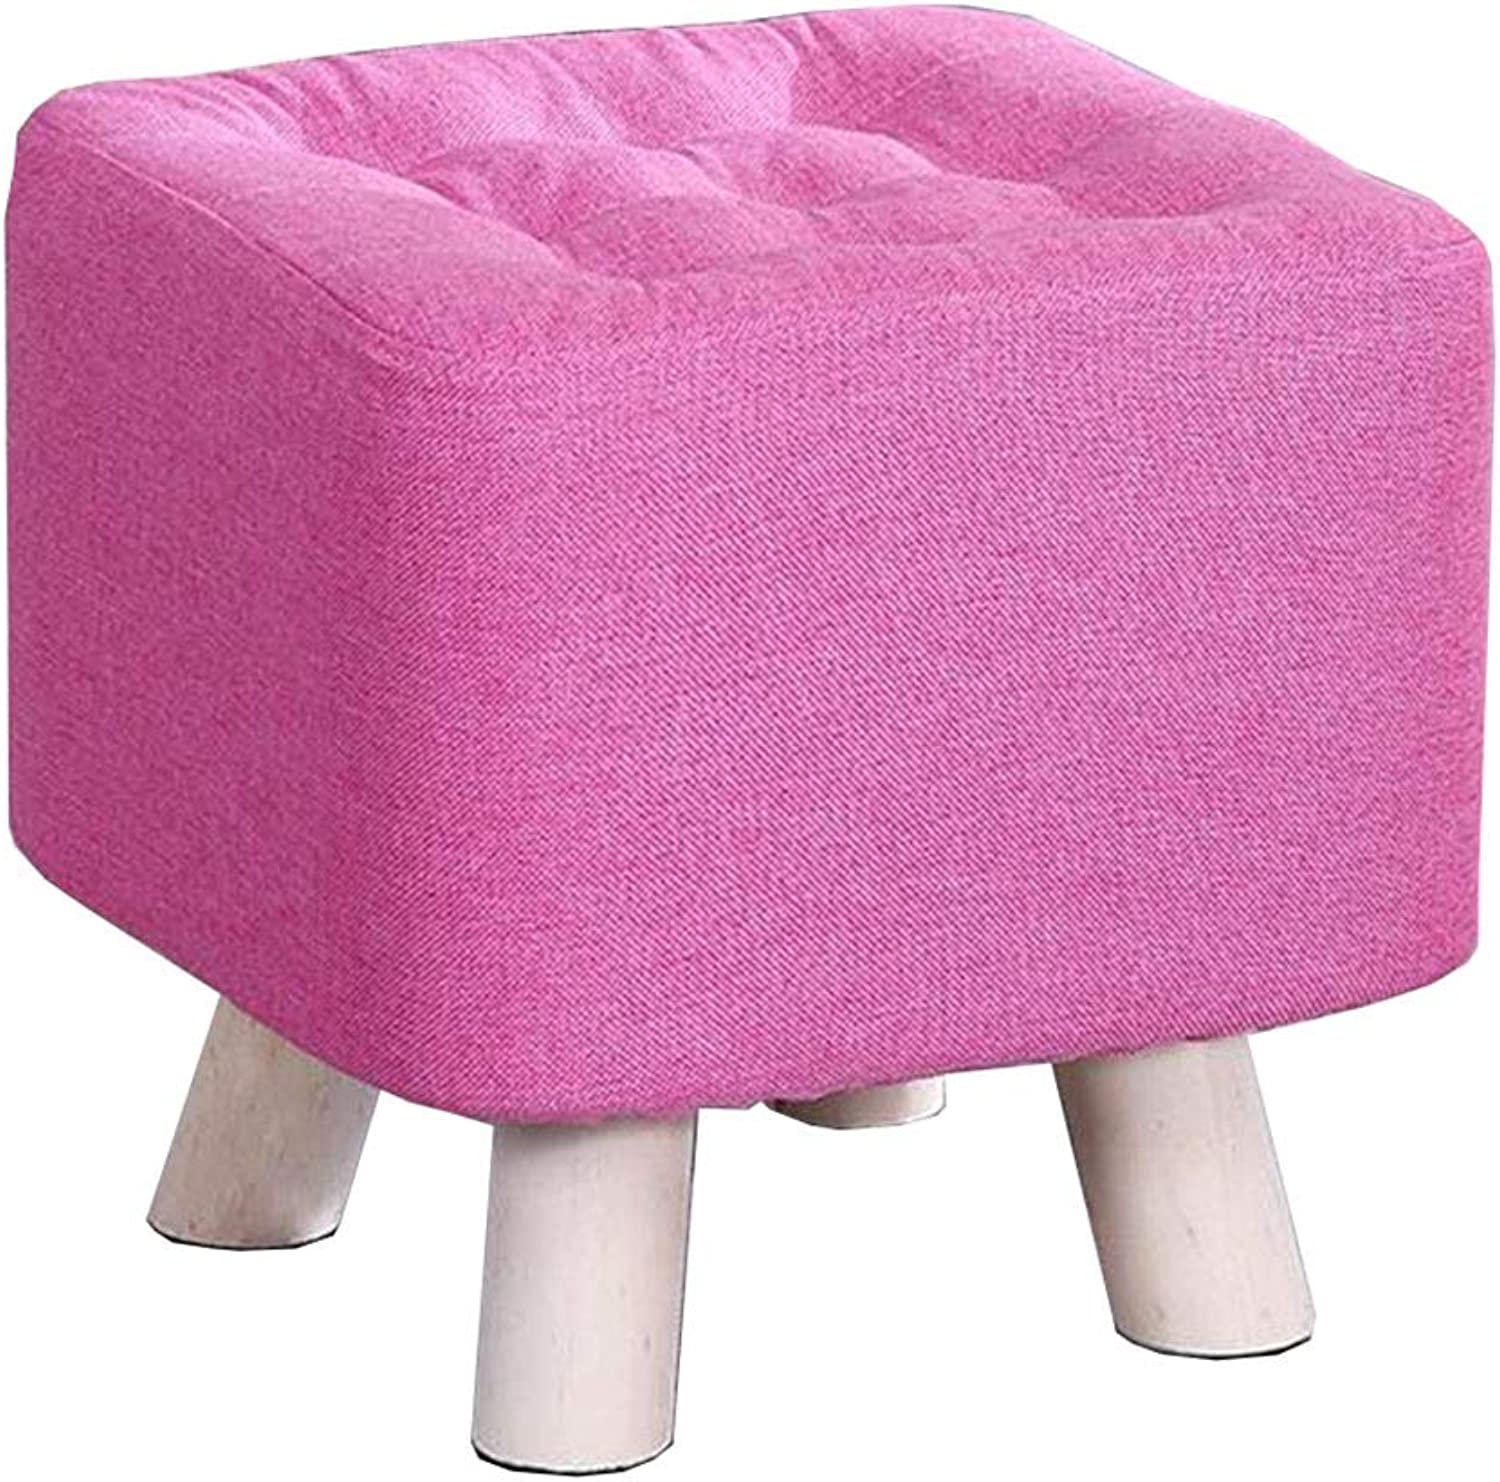 Dall Footstool Sponge Upholstered Sofa Stool Wooden Leg shoes Bench Removable Washable, 8 colors (color   T4, Size   29×29×29cm)